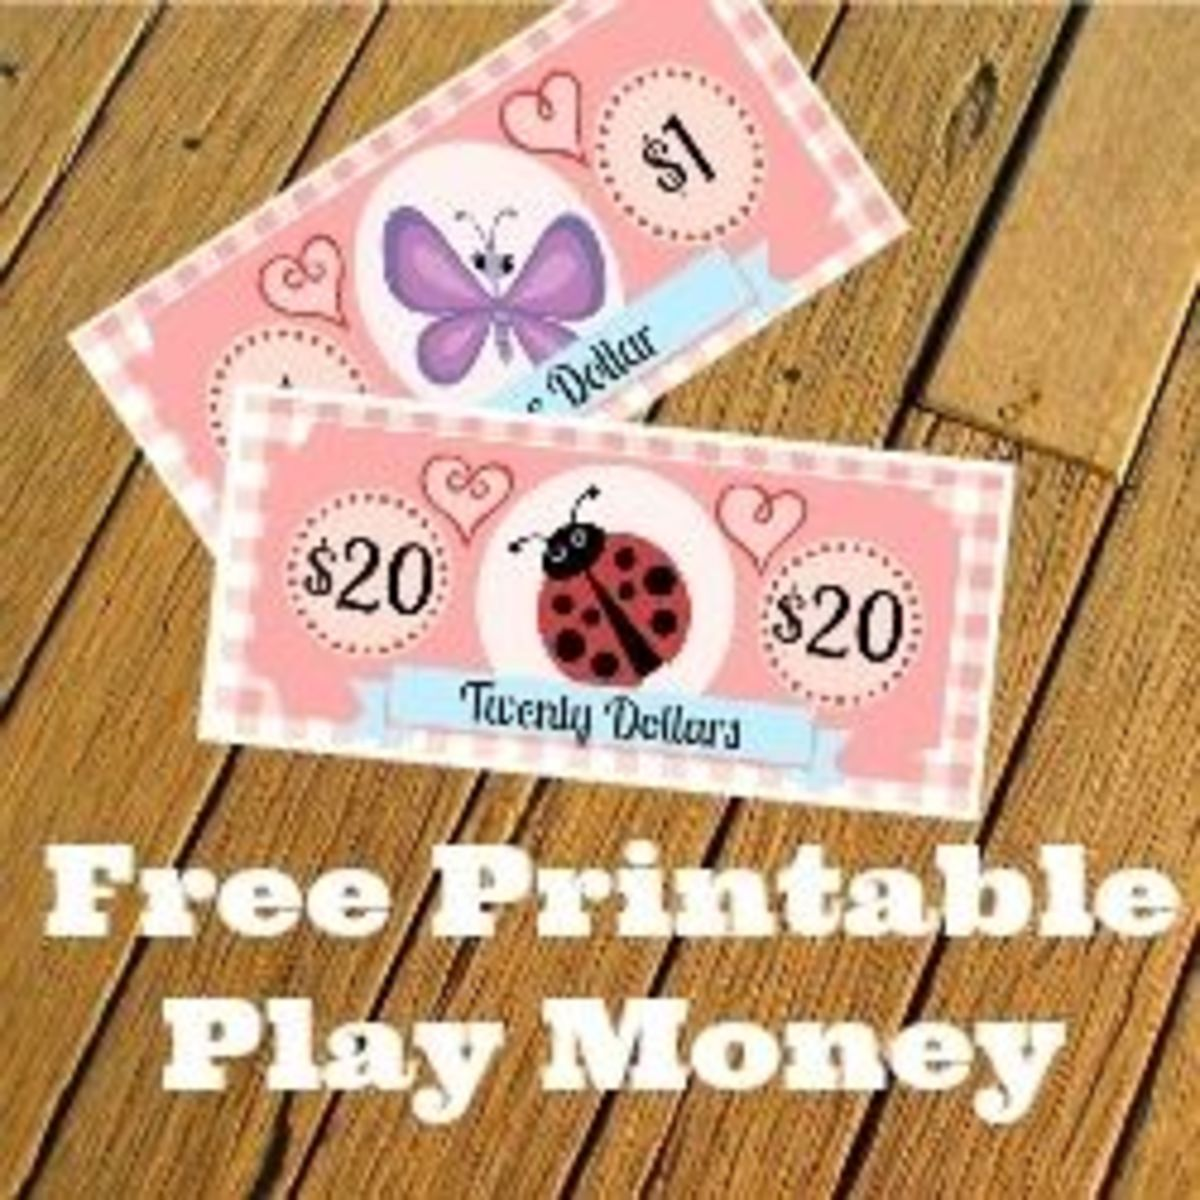 Free Printable Play Money Kids Will Love Fake Monopoly Bills Coins Hubpages